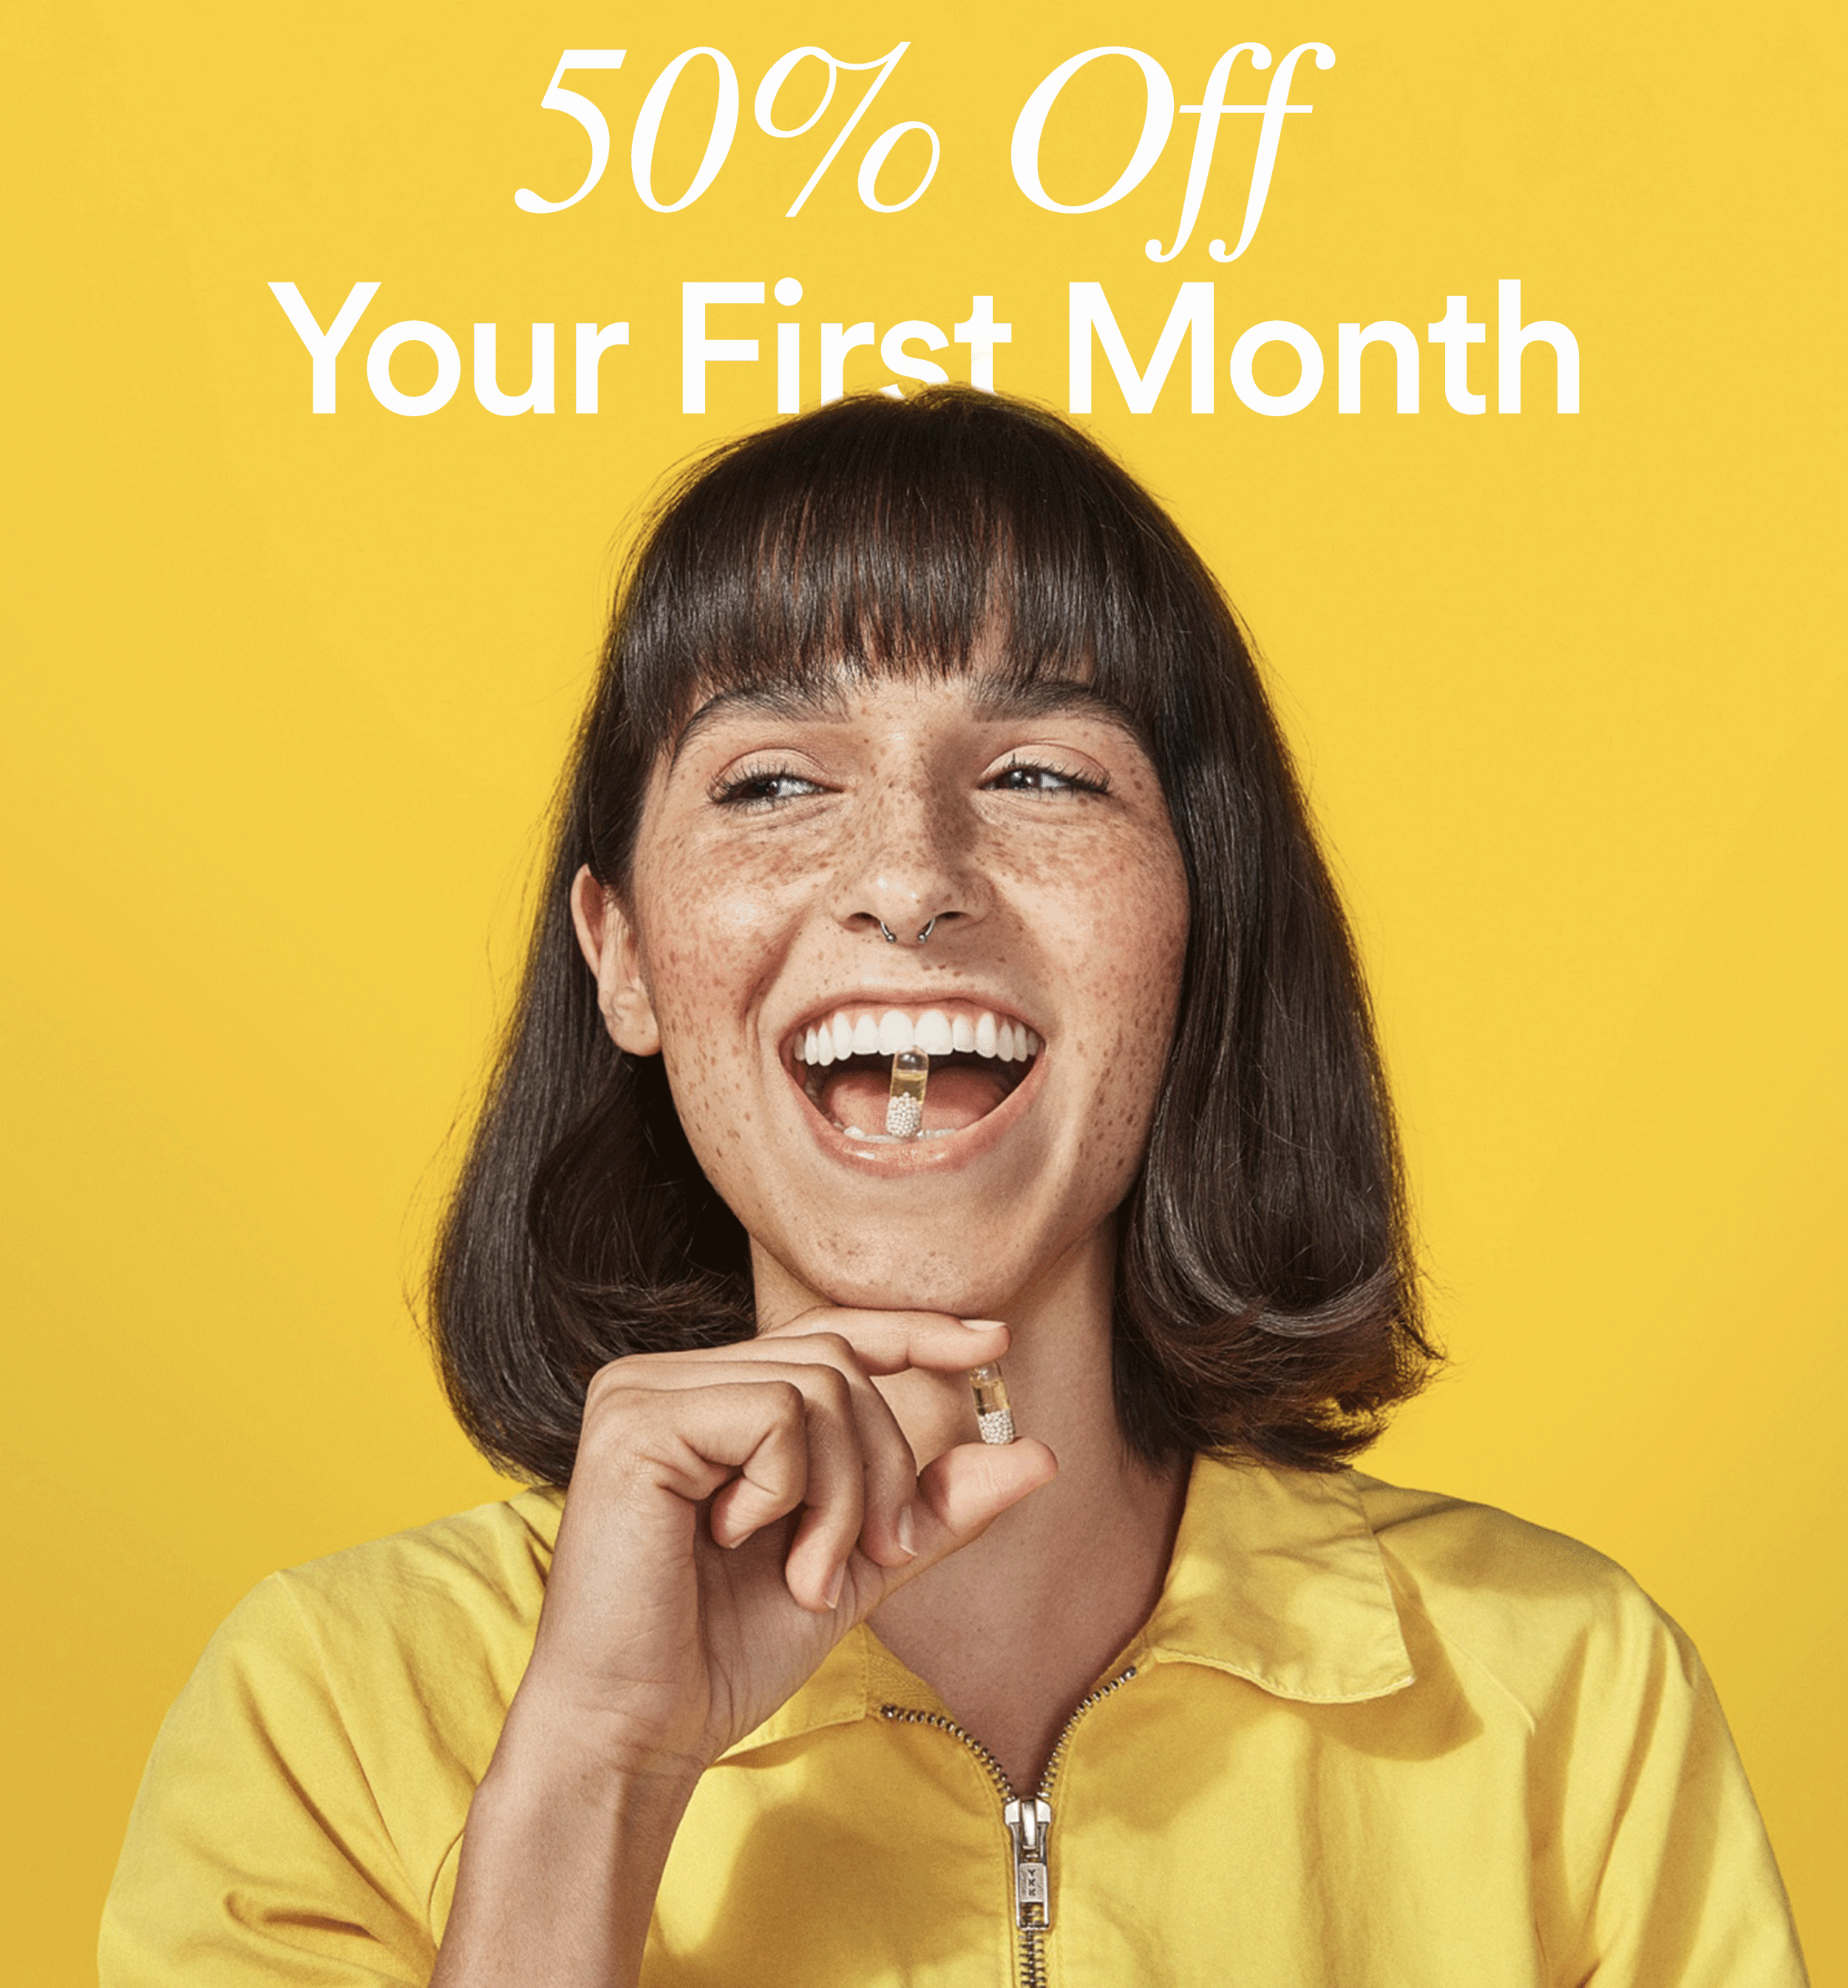 Ritual Vitamins Black Friday Sale EXTENDED: 50% Off First Month!